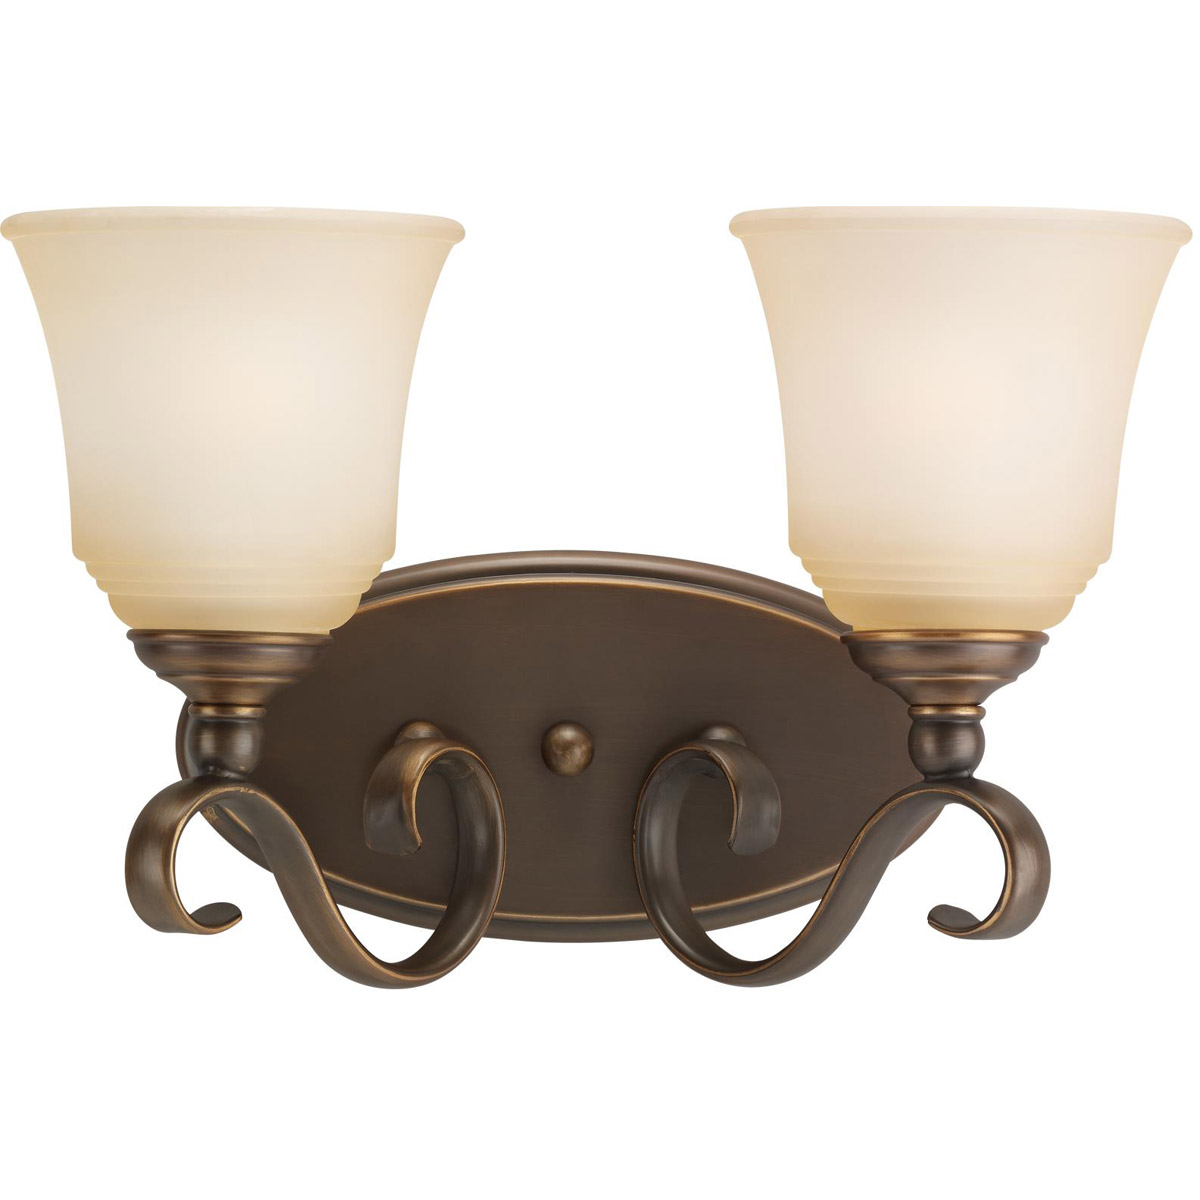 Sea Gull Lighting Parkview 2 Light Bath Vanity in Russet Bronze 44380-829 photo